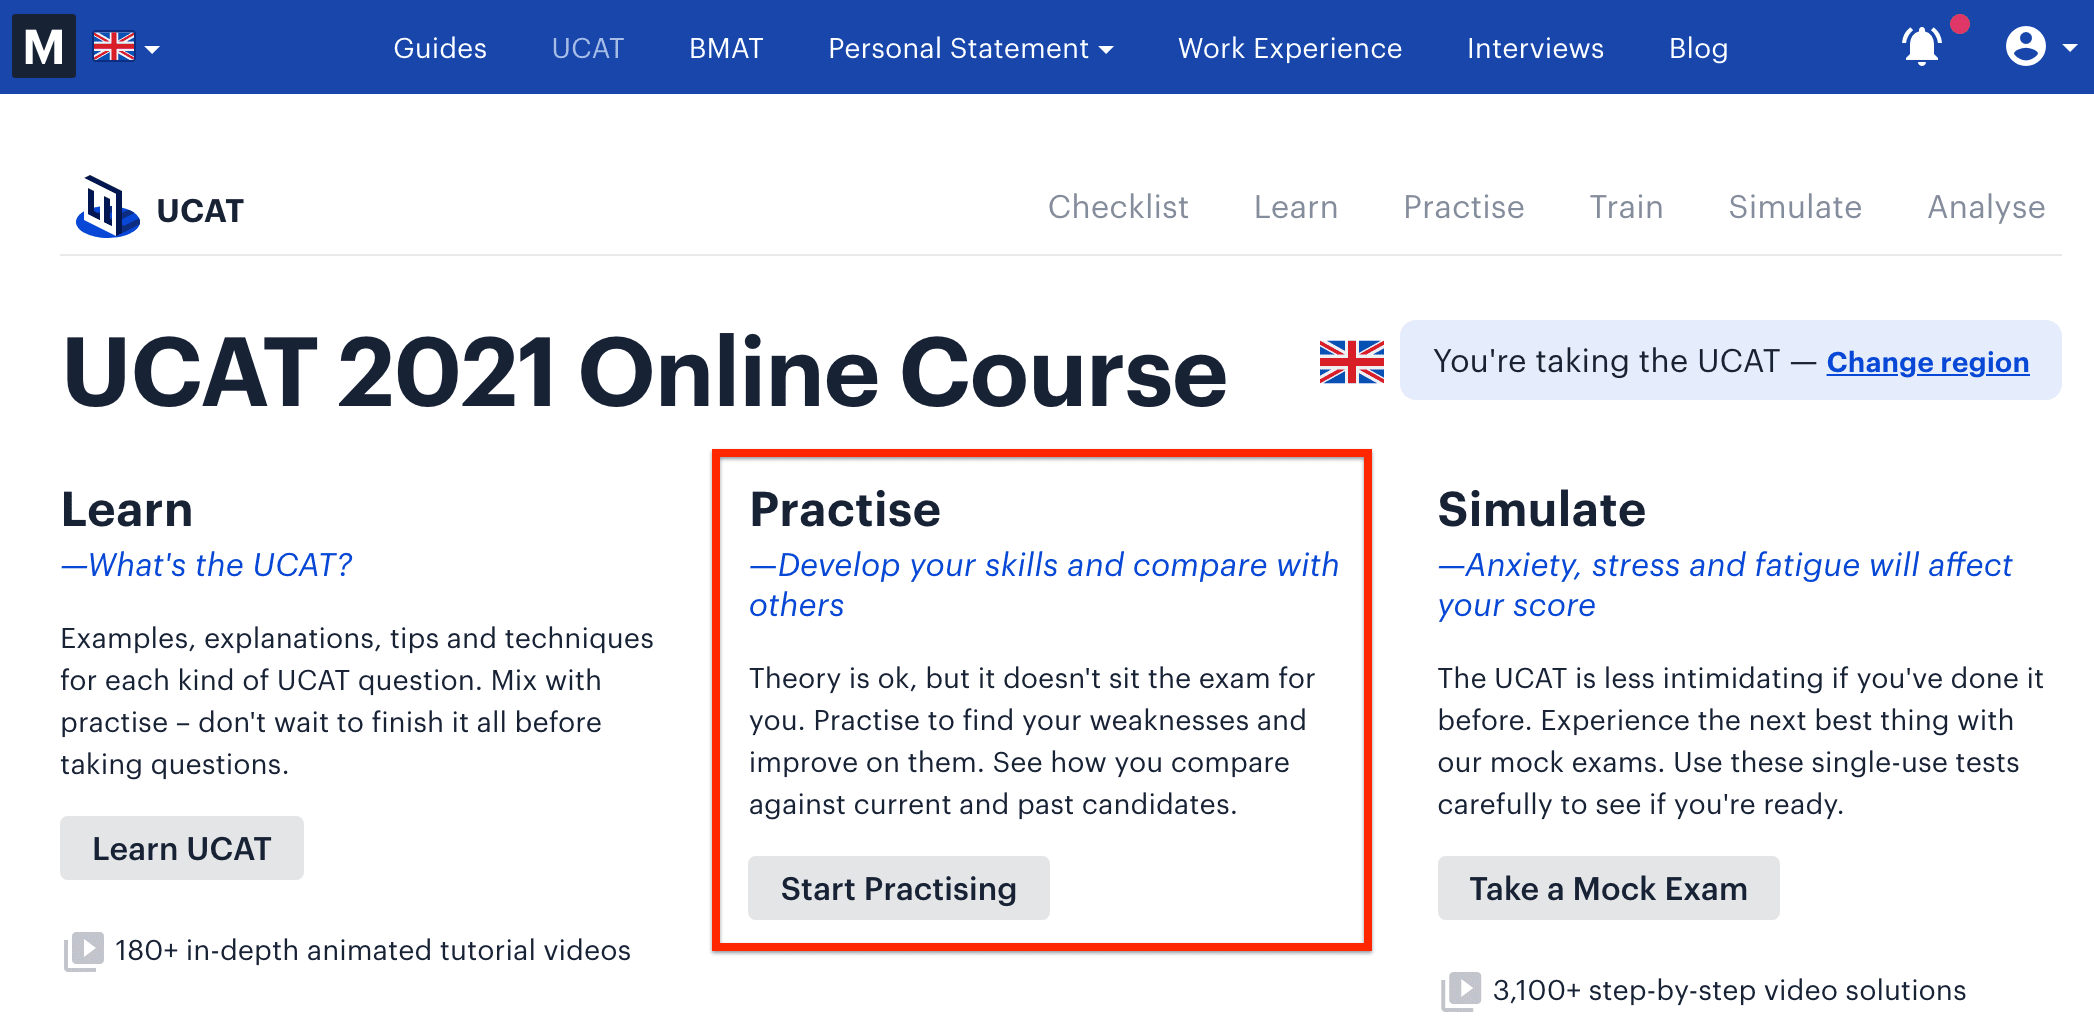 A screenshot of Medify's UCAT ANZ course showing the 'Start Practising' link.